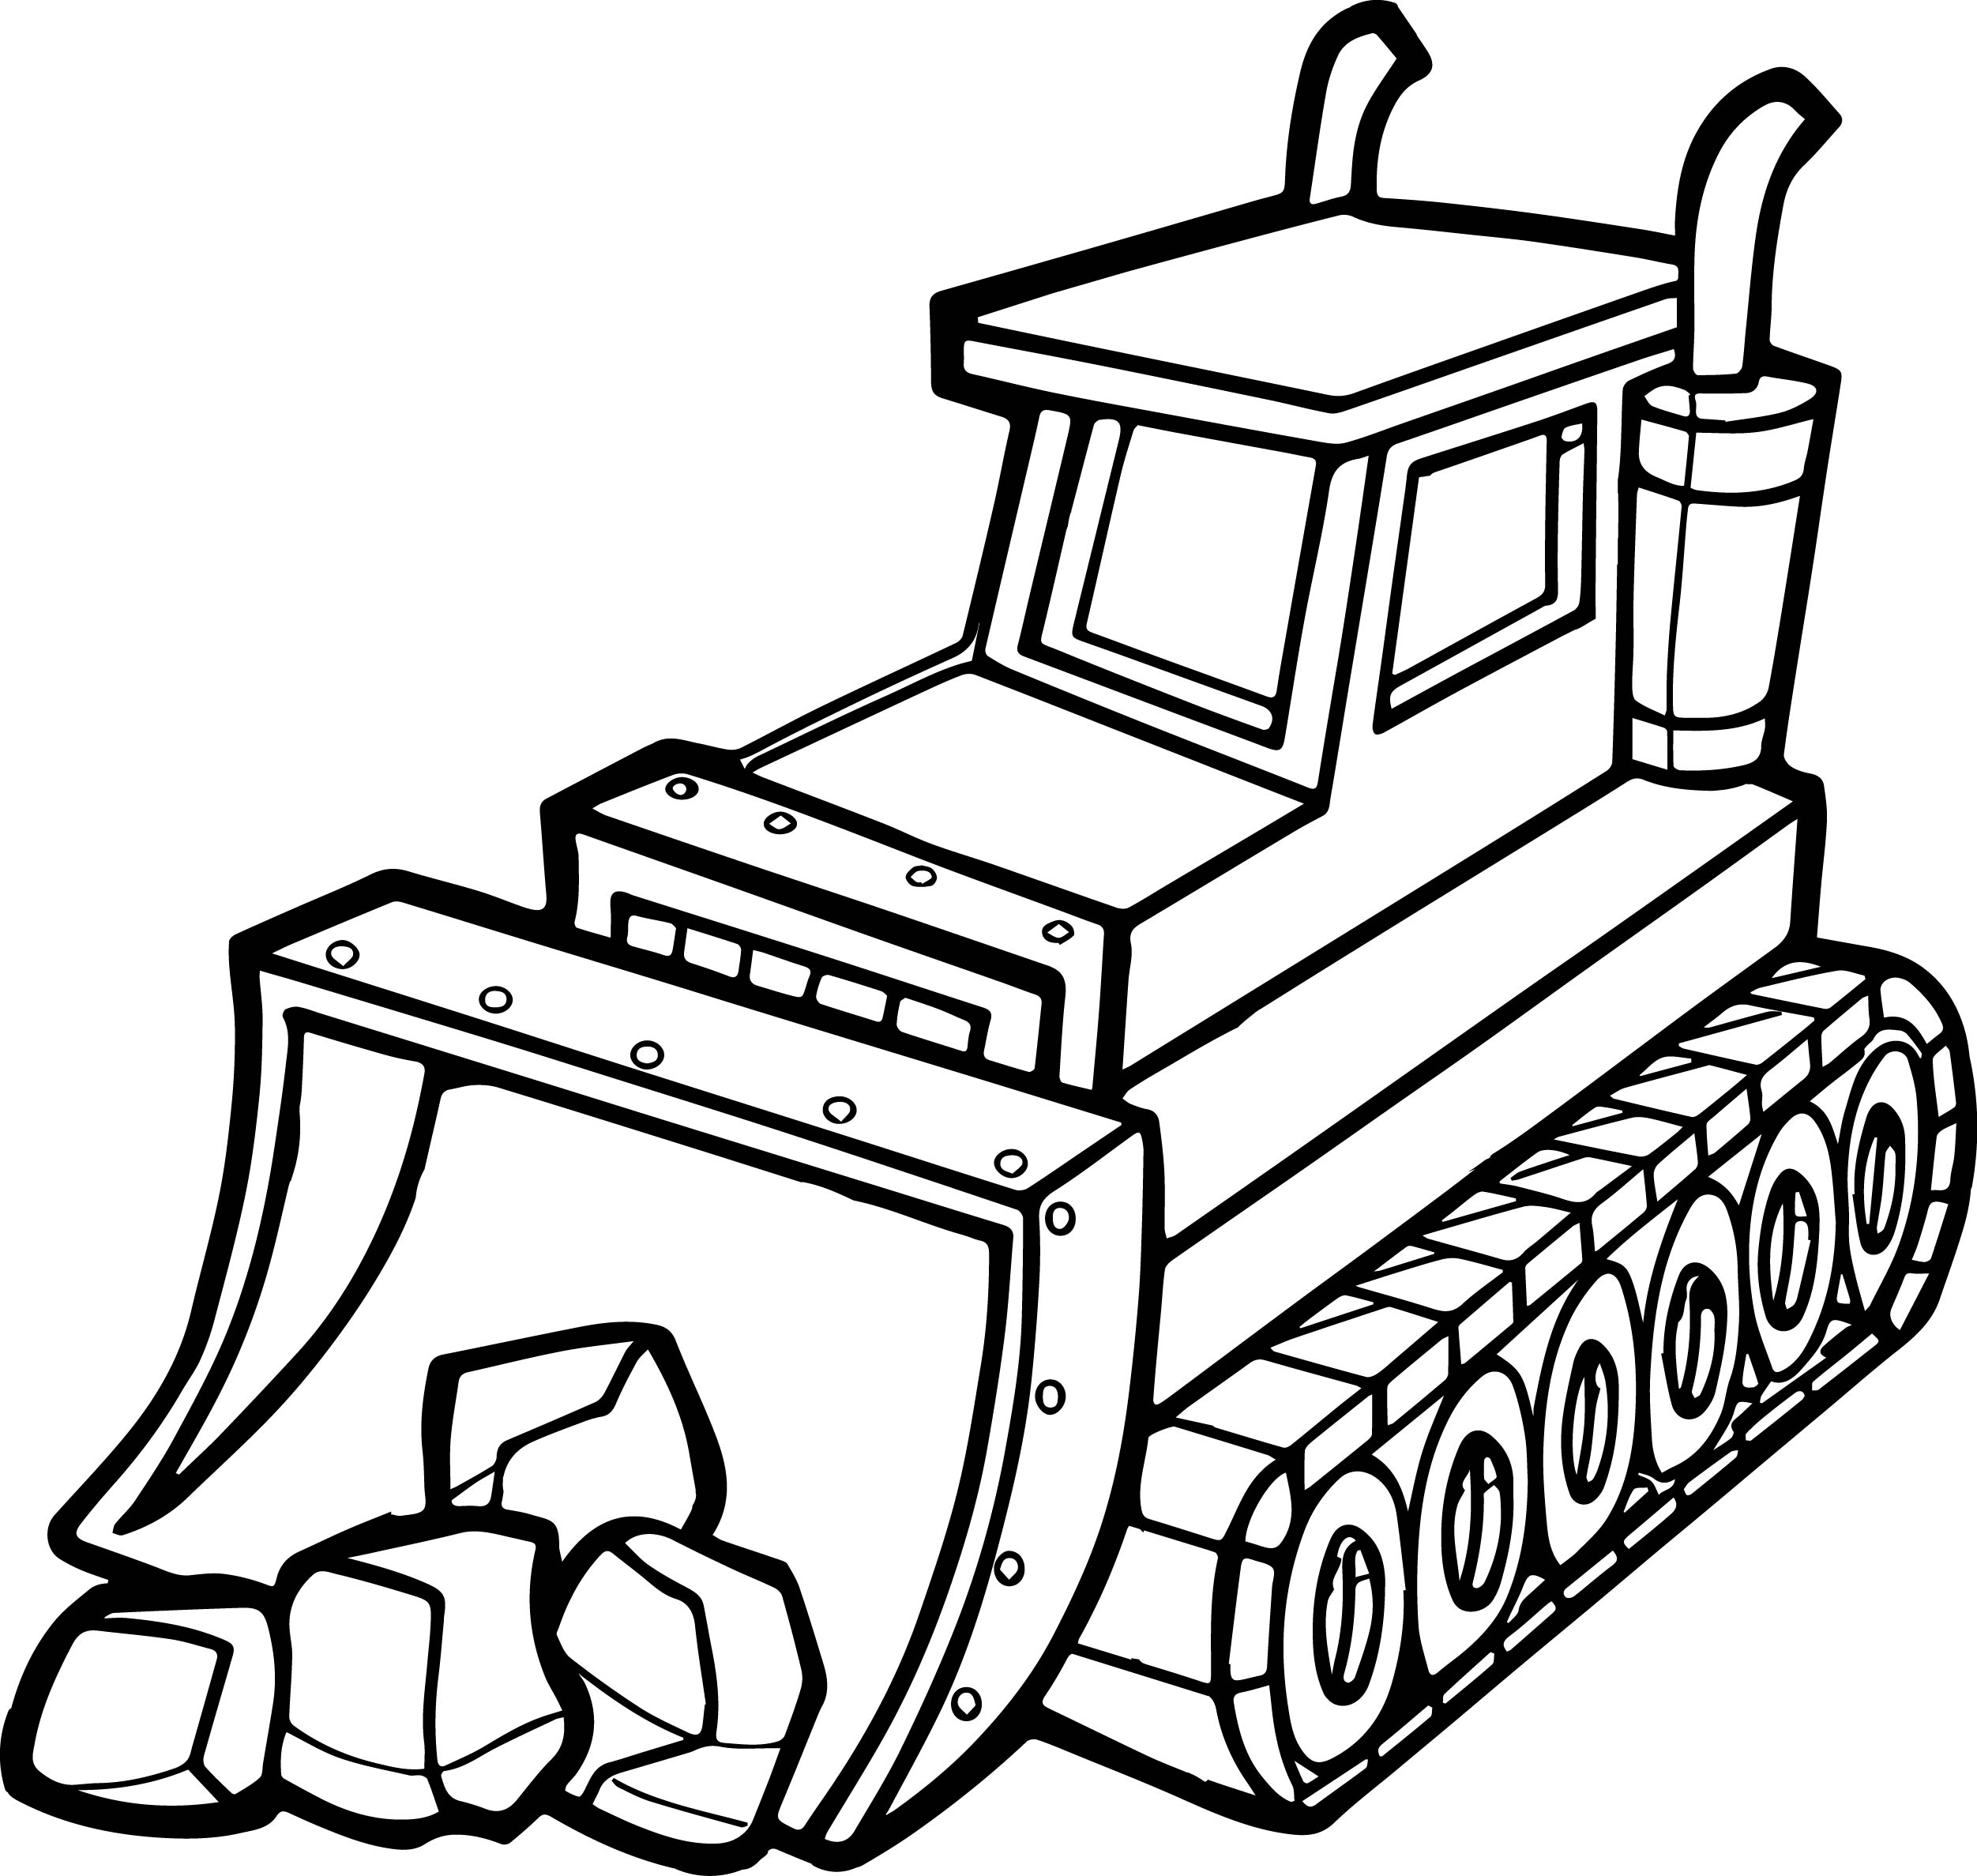 Excavator Coloring Page - Best Stone Shovel Bulldozer Coloring Page